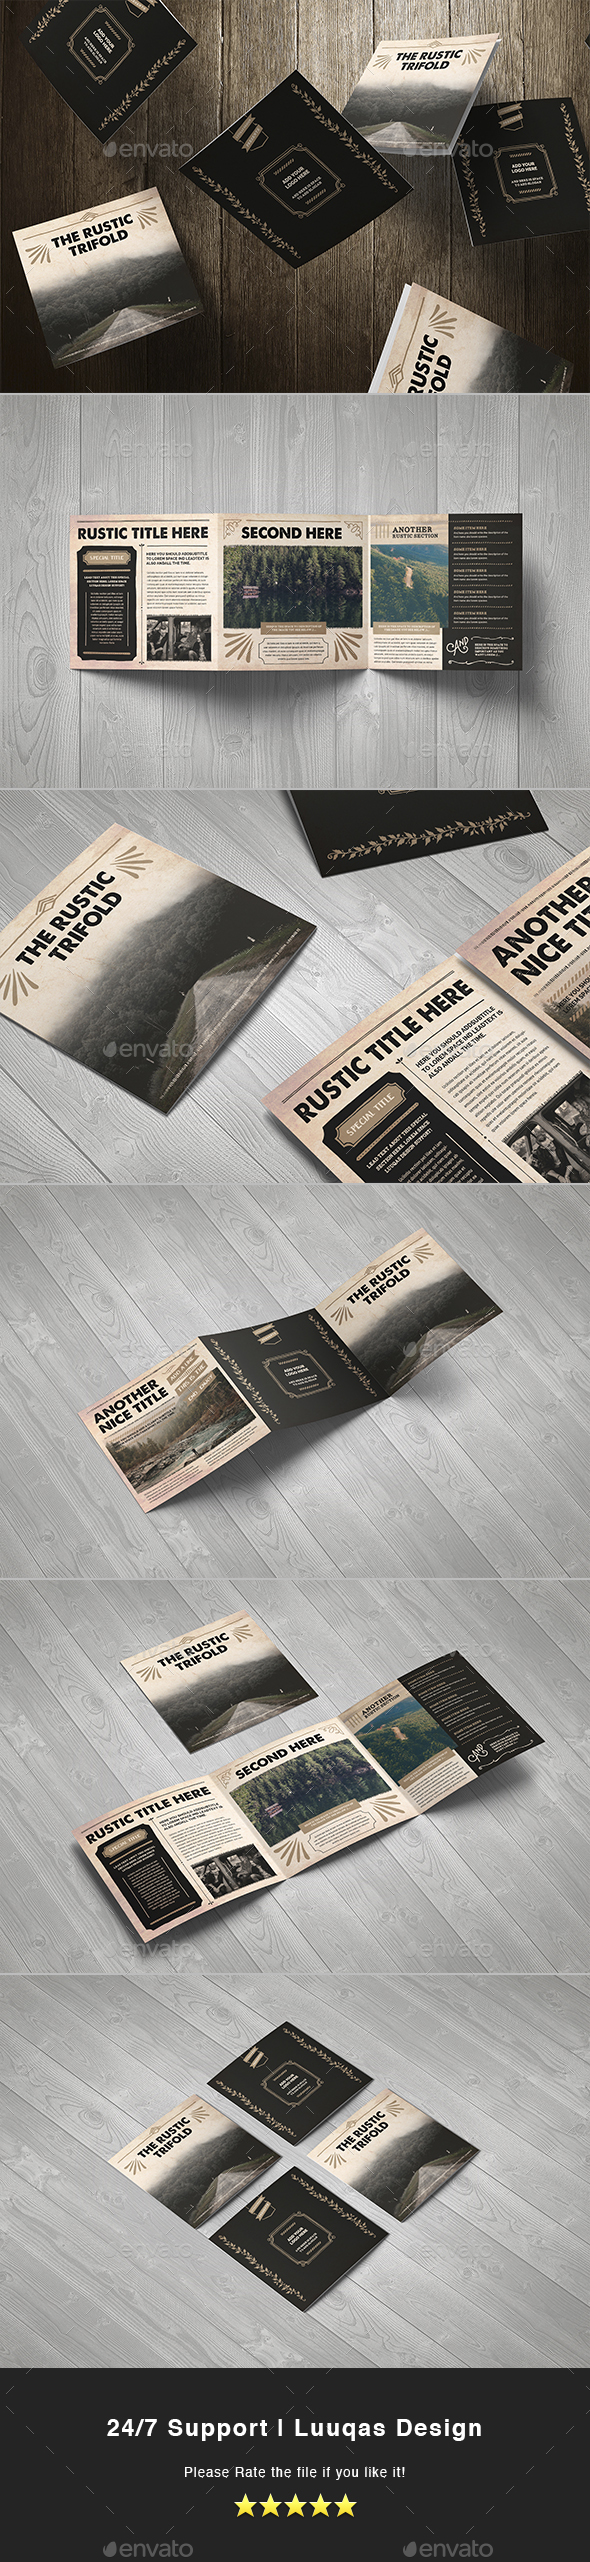 The Rustic Square Brochure - Brochures Print Templates